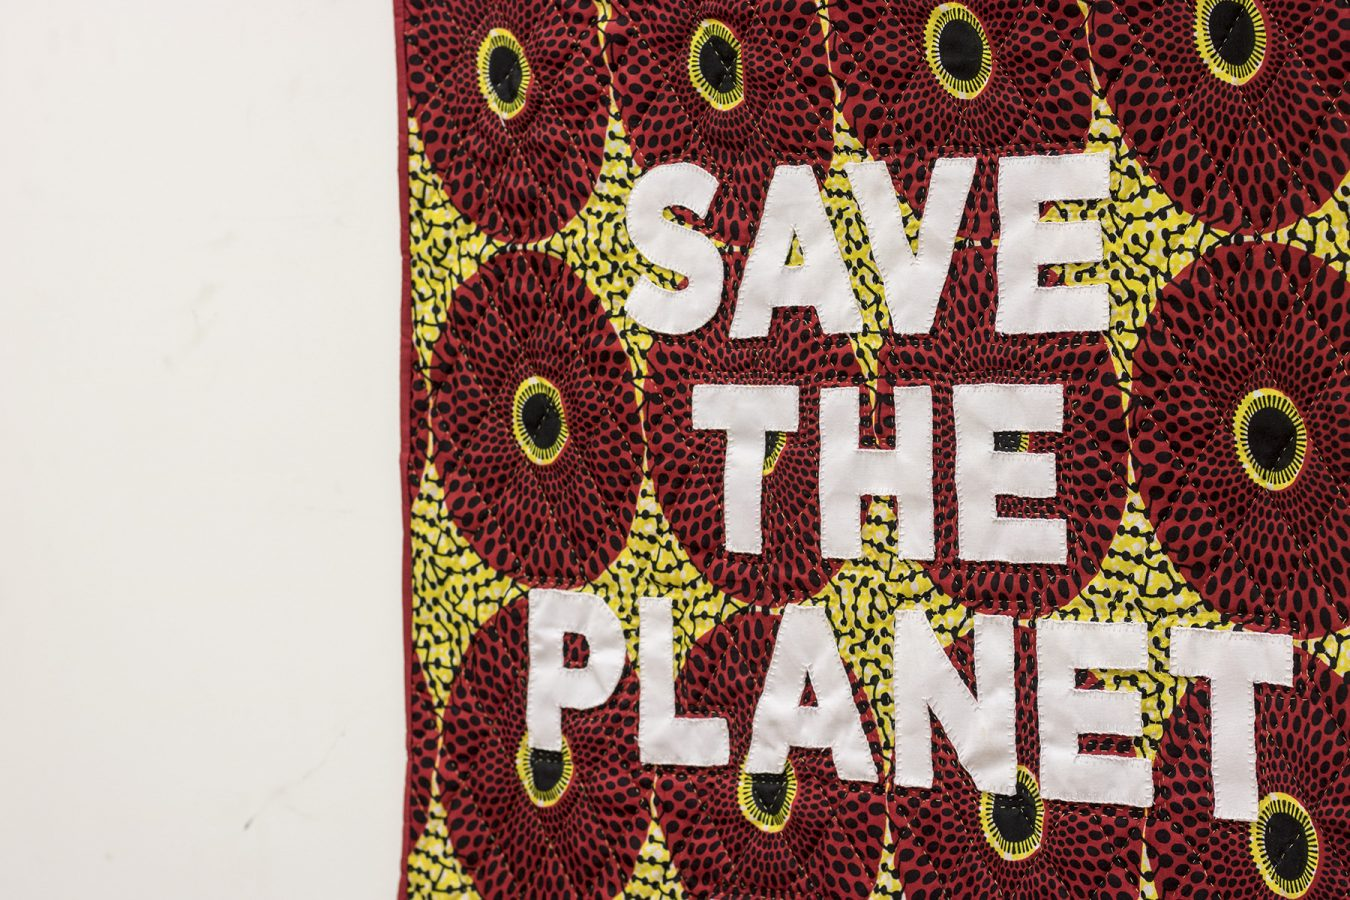 Save The Planet, Eat People